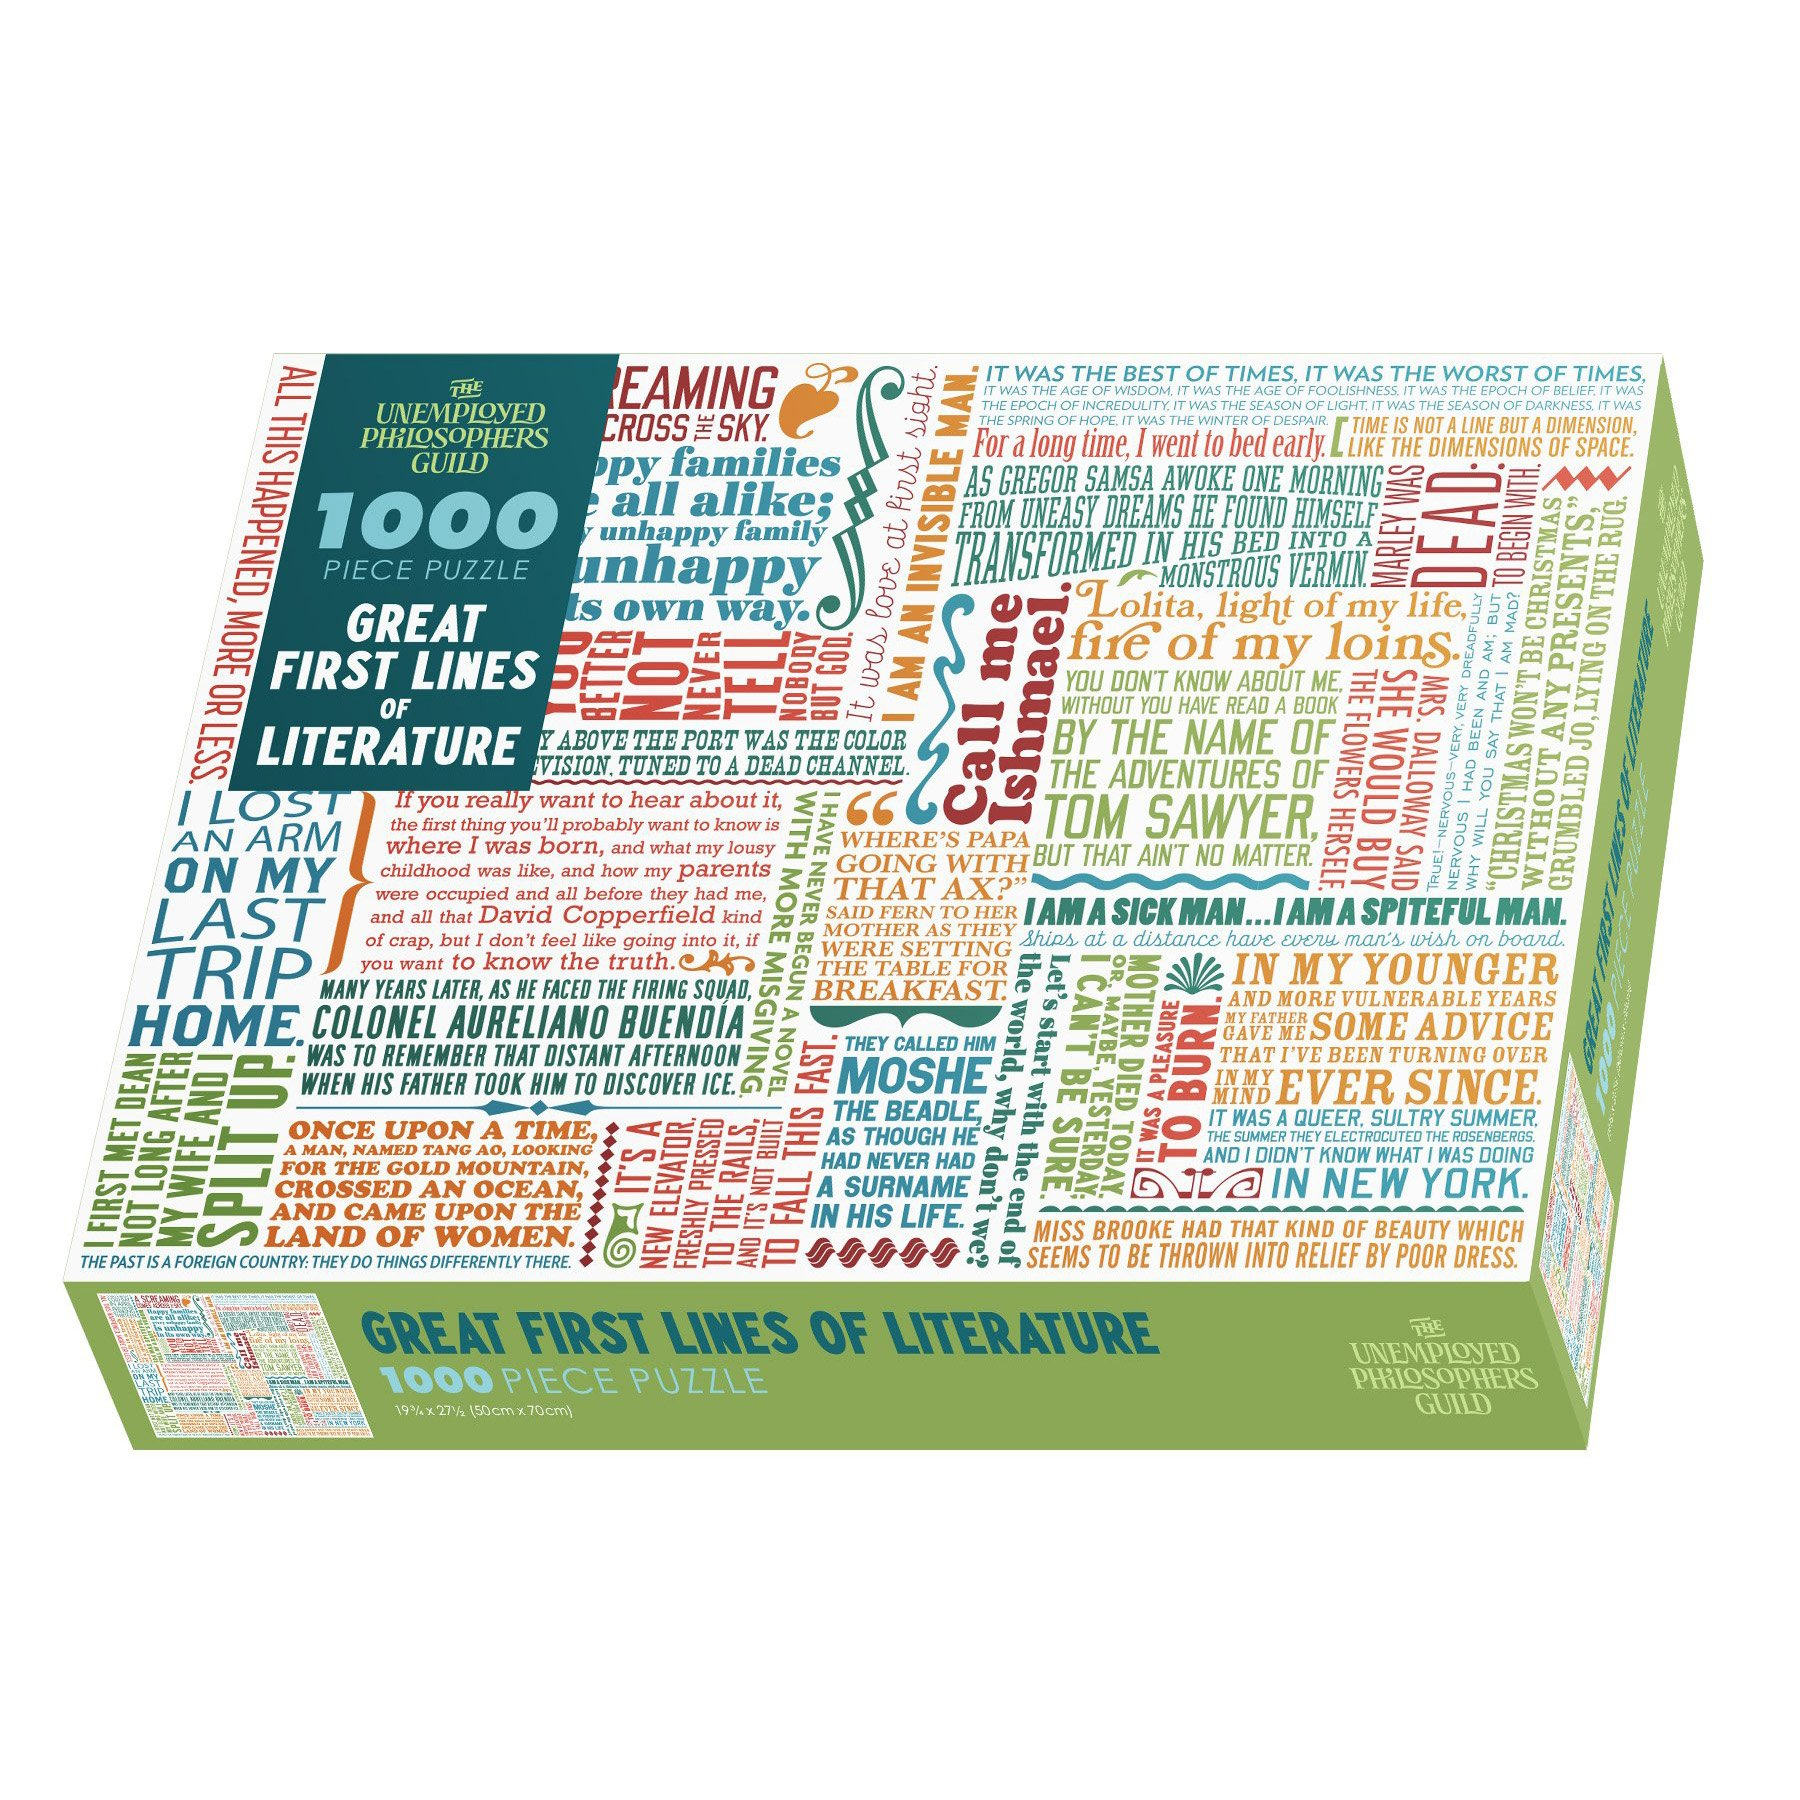 Great First Lines of Literature 1000 Piece Puzzle in Box